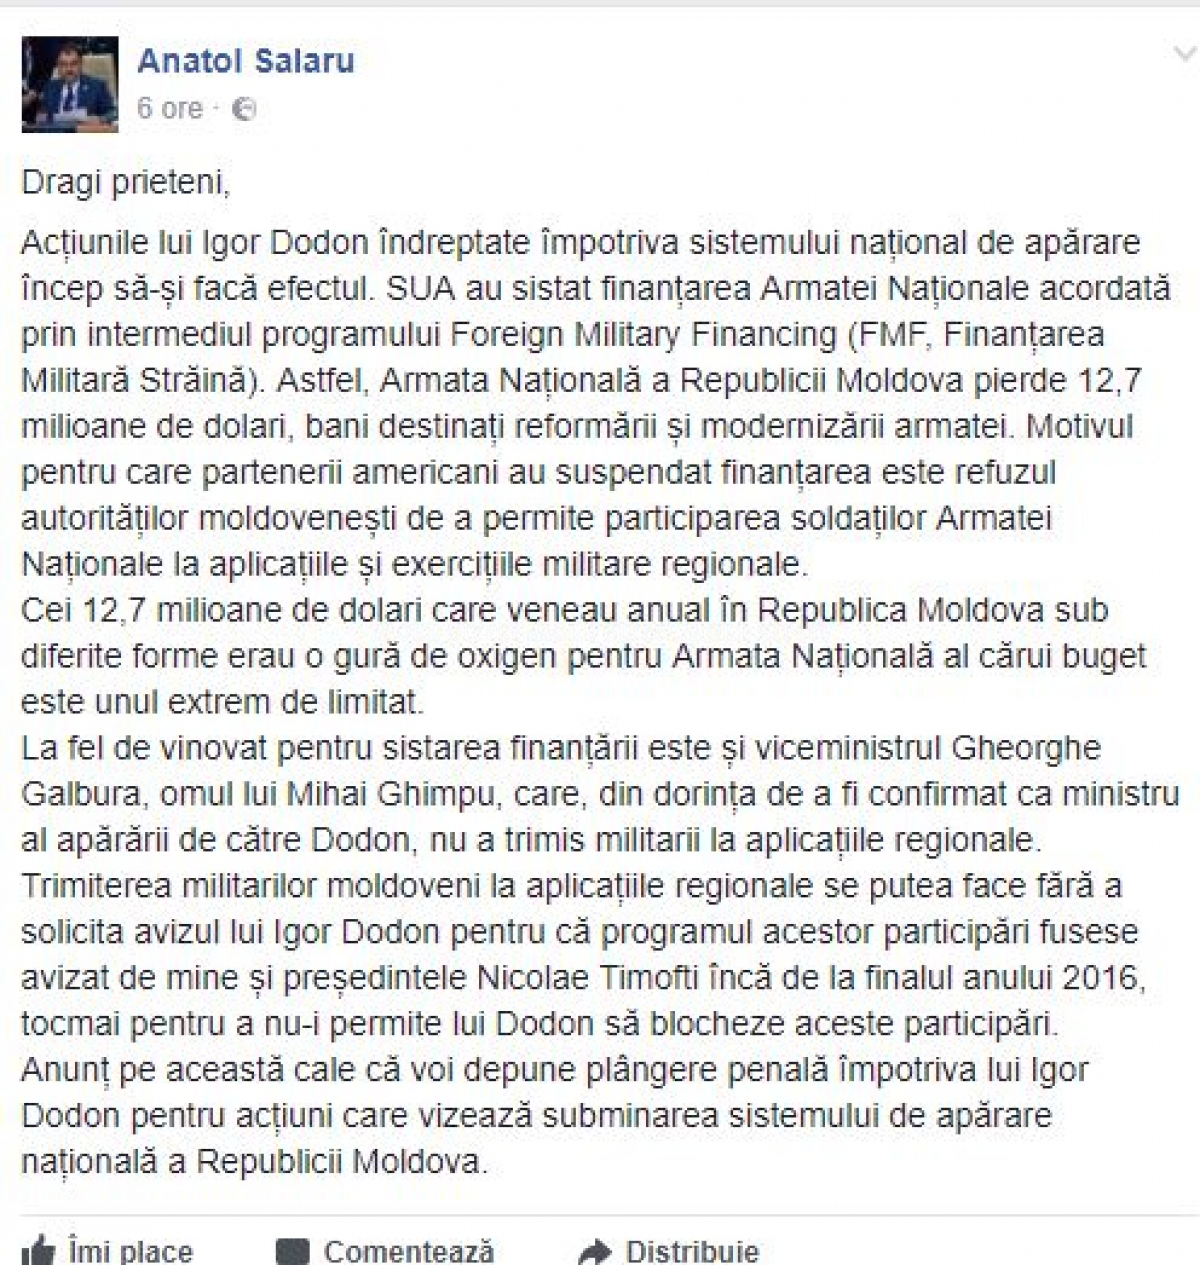 Șalaru's posts on social networks